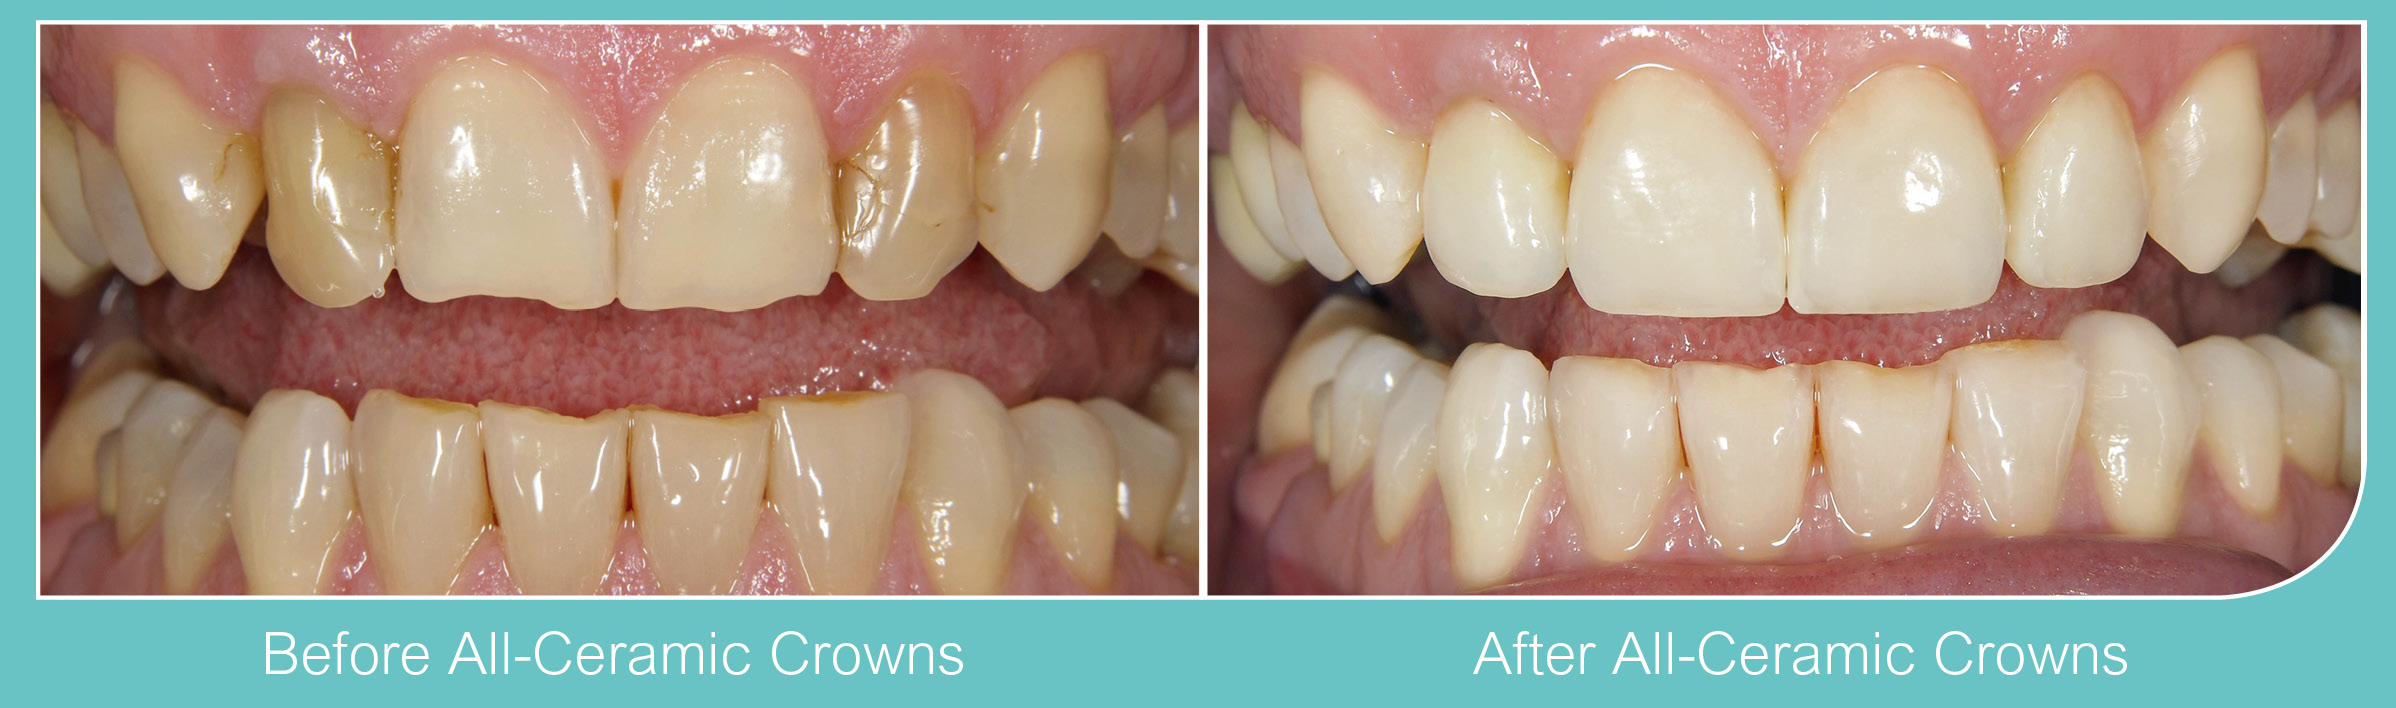 All Ceramic Crowns Dentist London